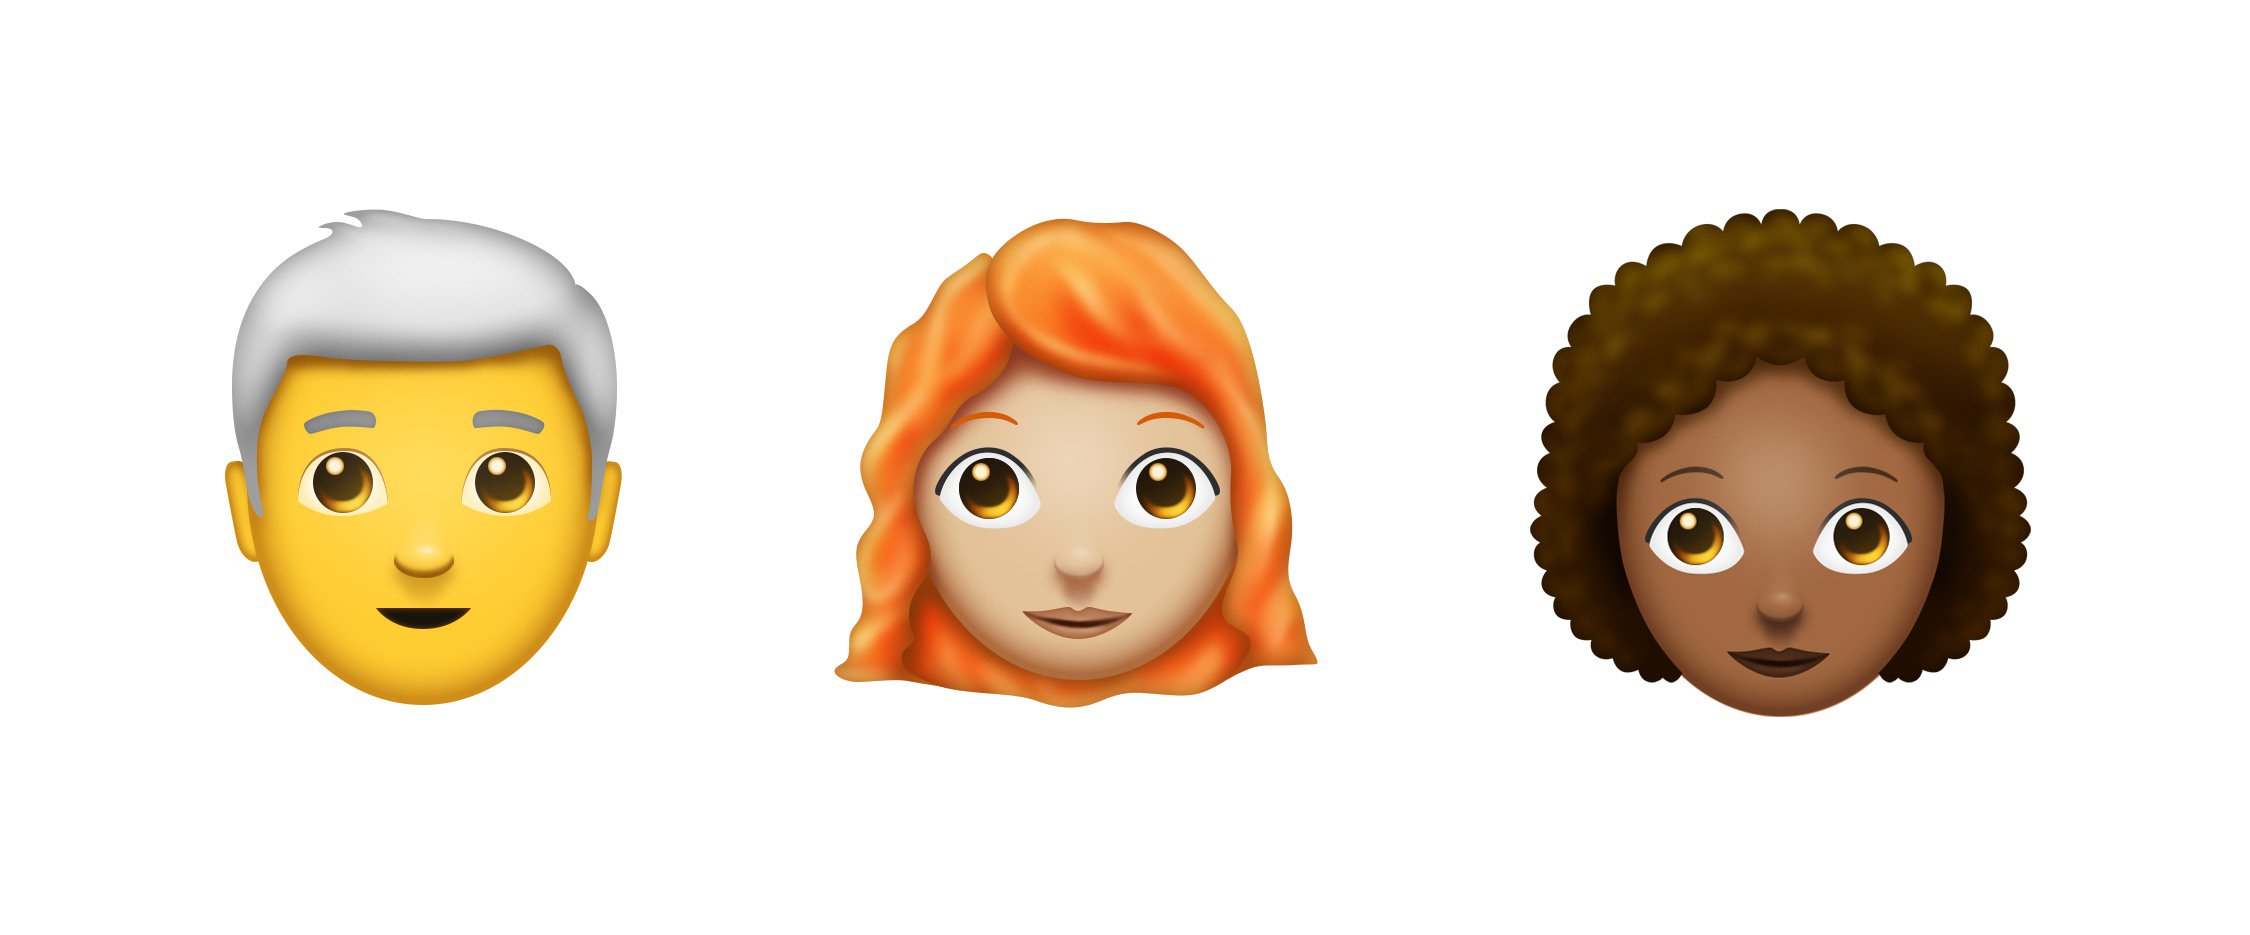 Here are 67 new emoji that could come to iOS next year